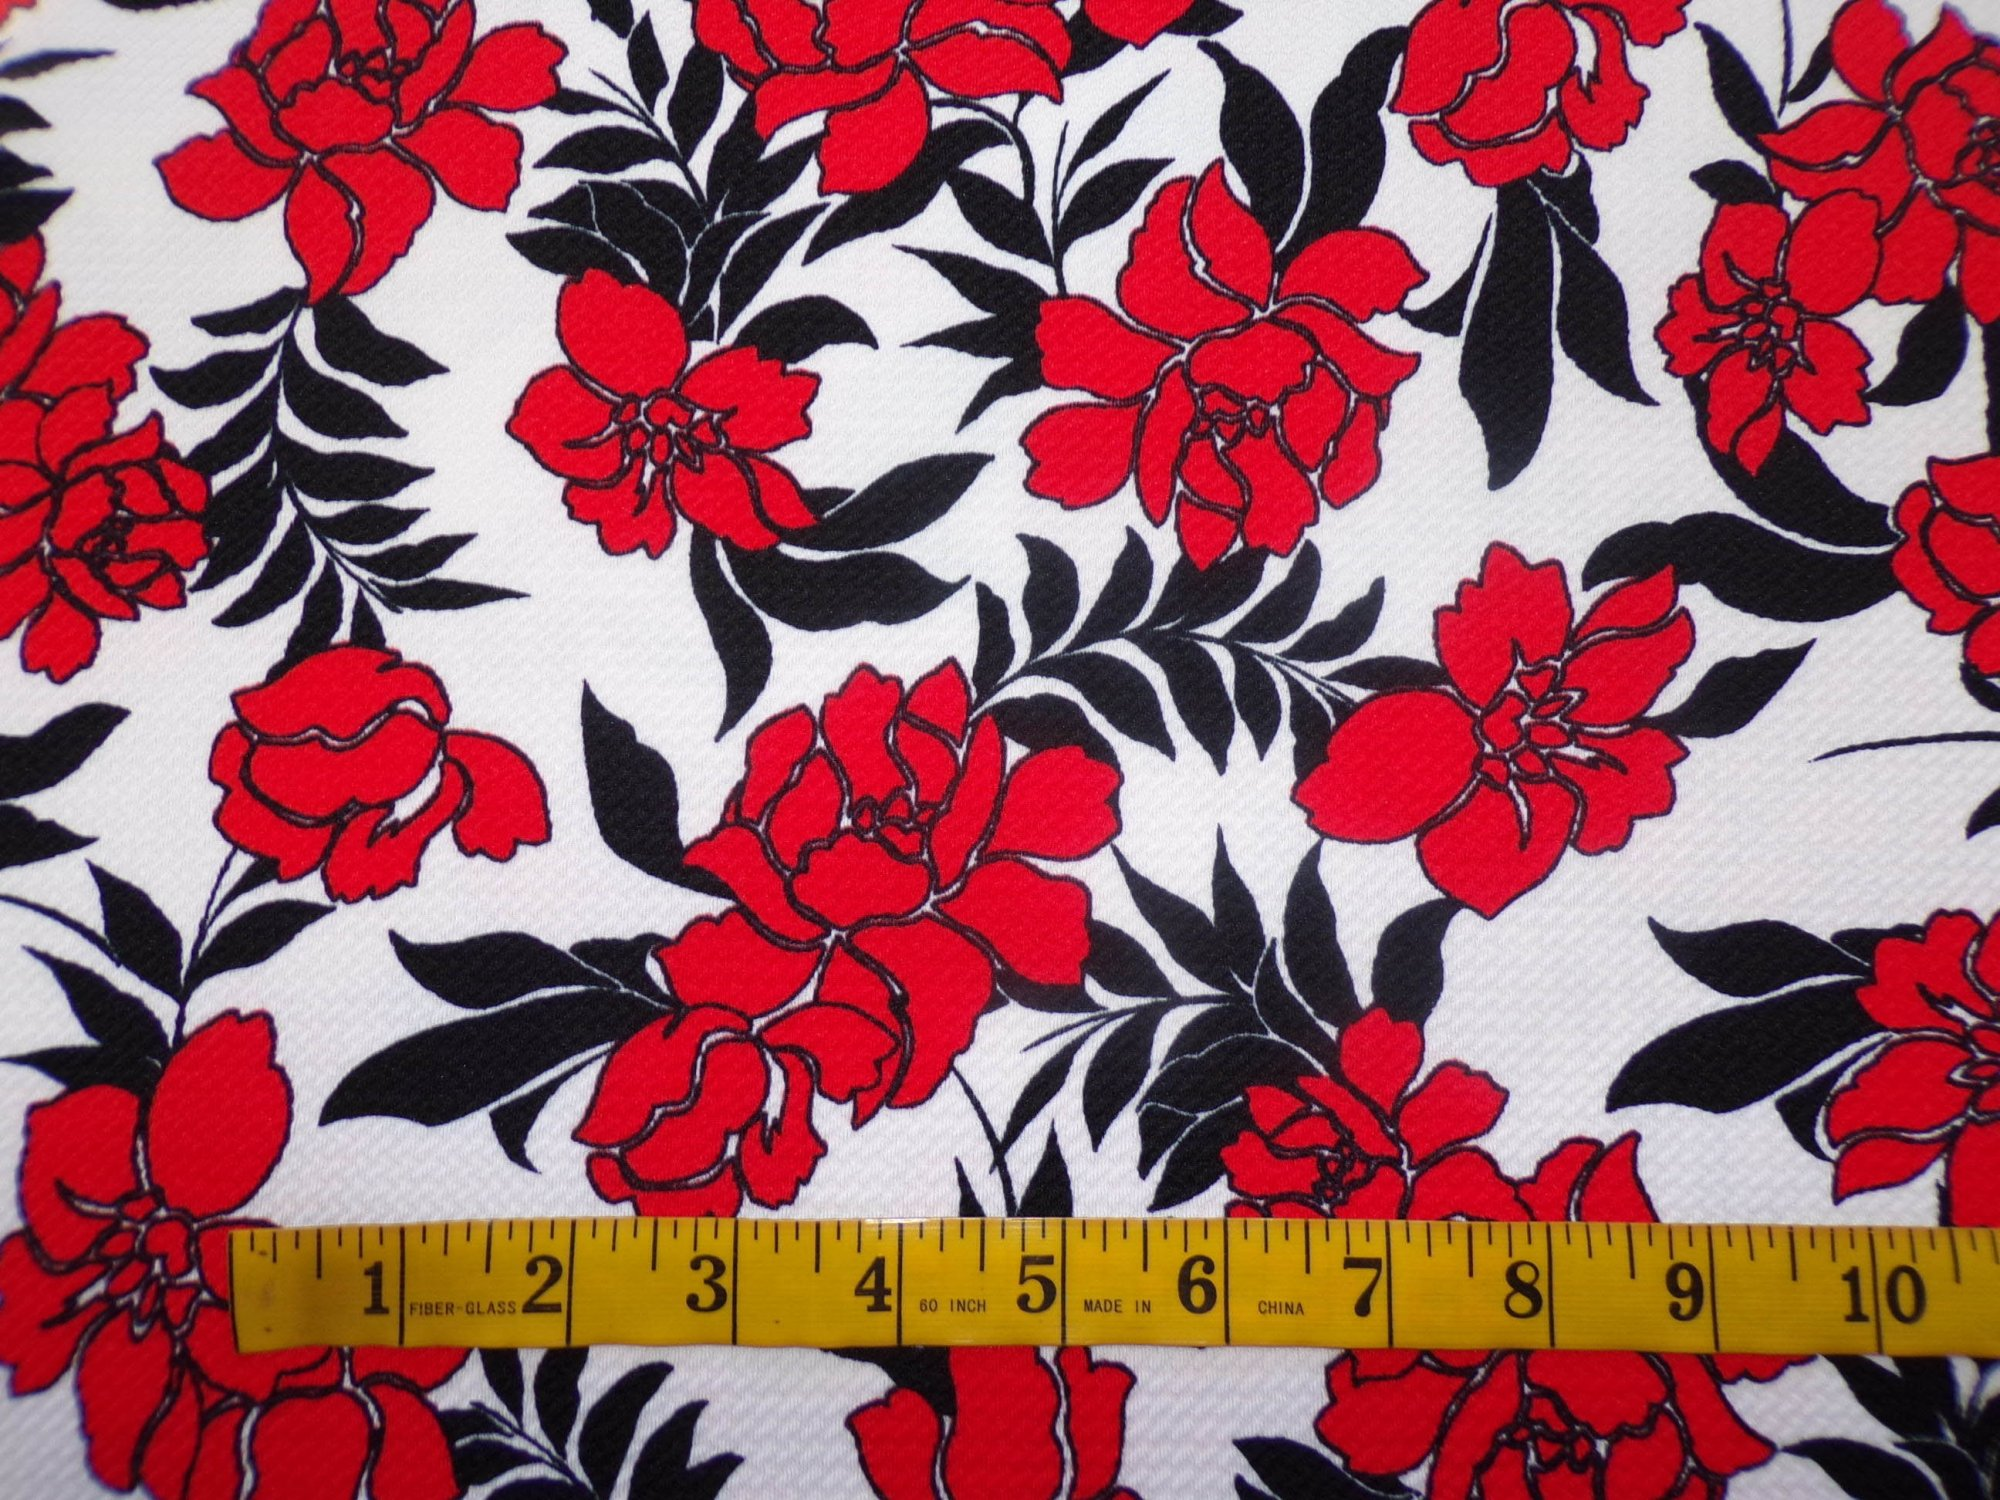 Liverpool Knit - Red Black and White Floral